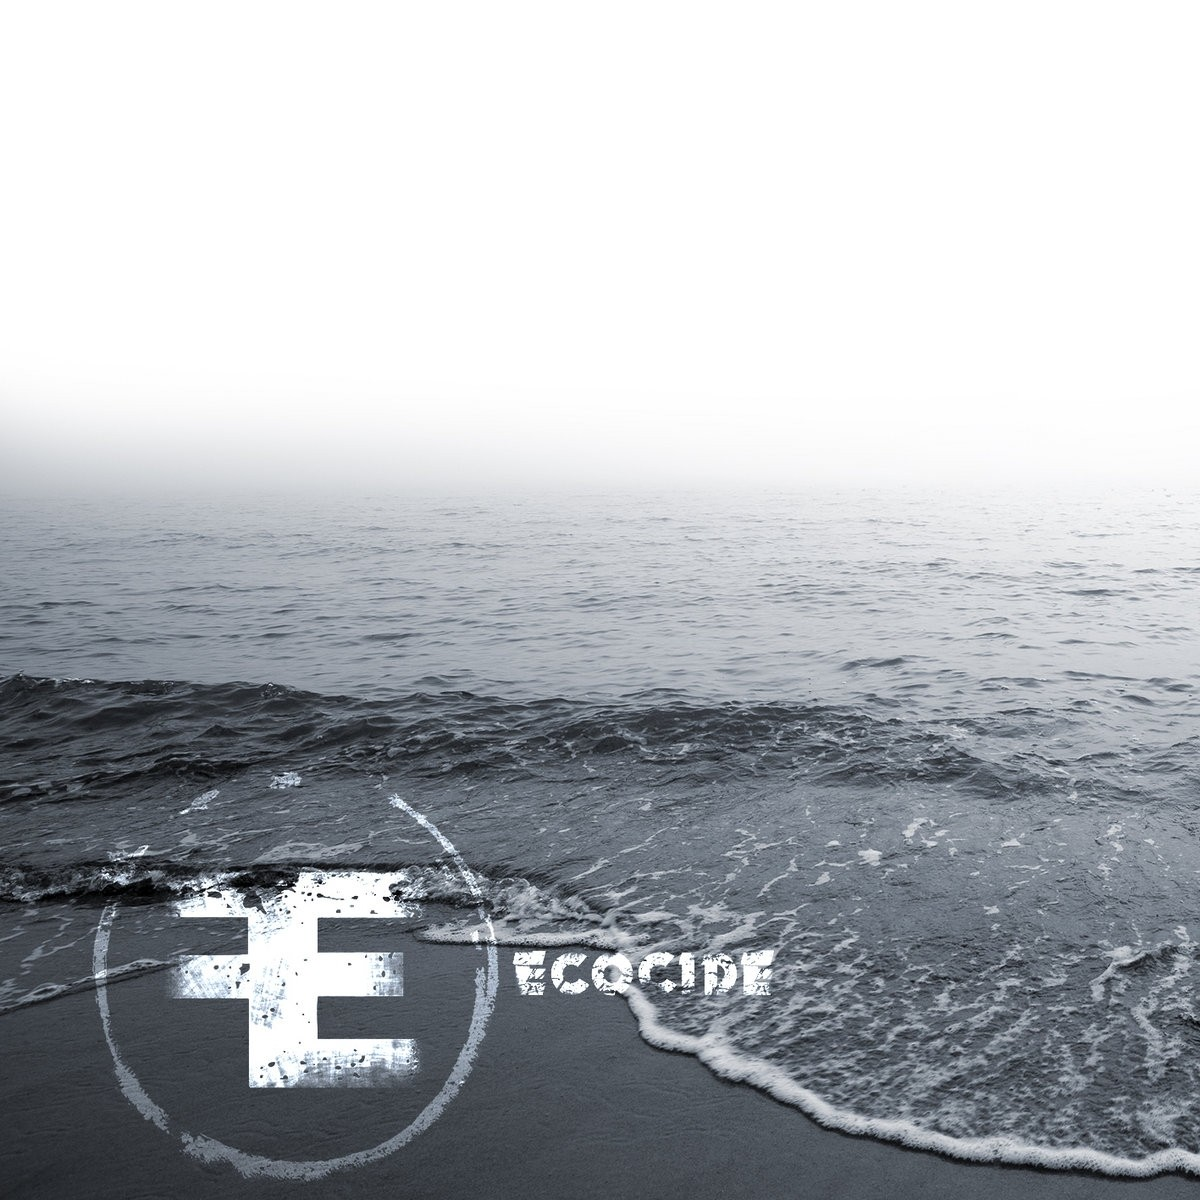 Finkseye - Ecocide (Limited Edition) - CD